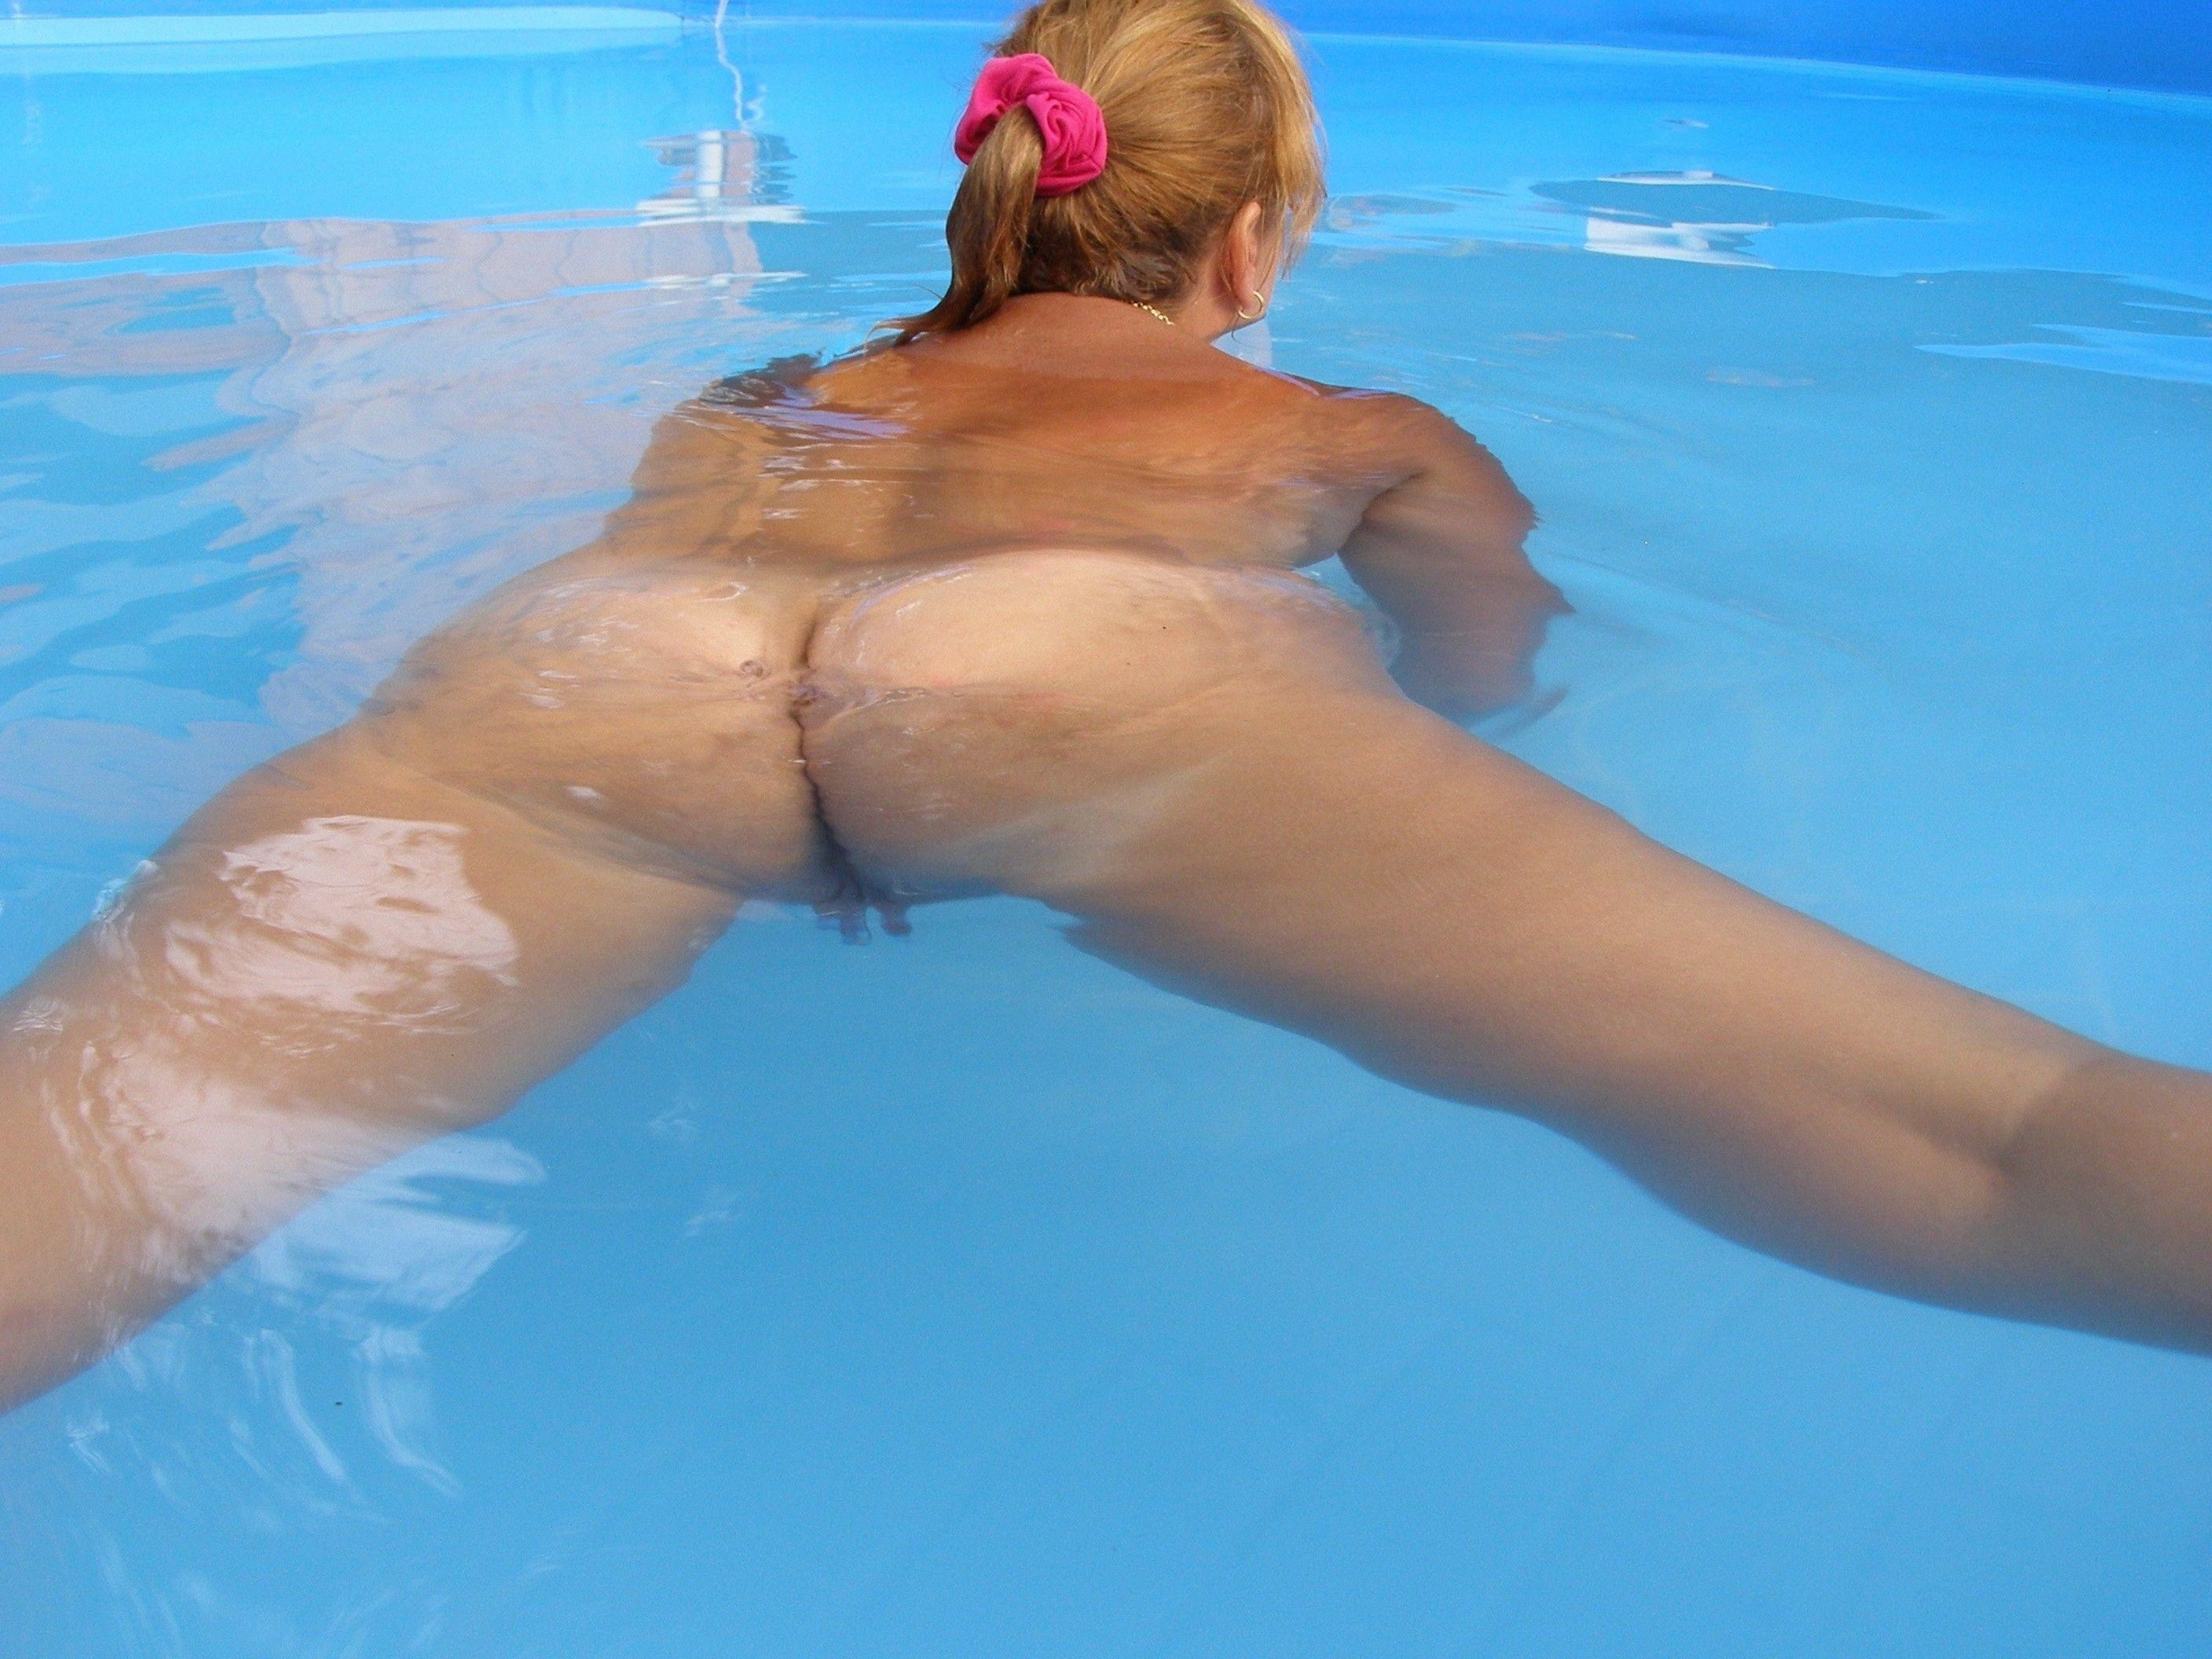 Hot nude adult swimming porno photos